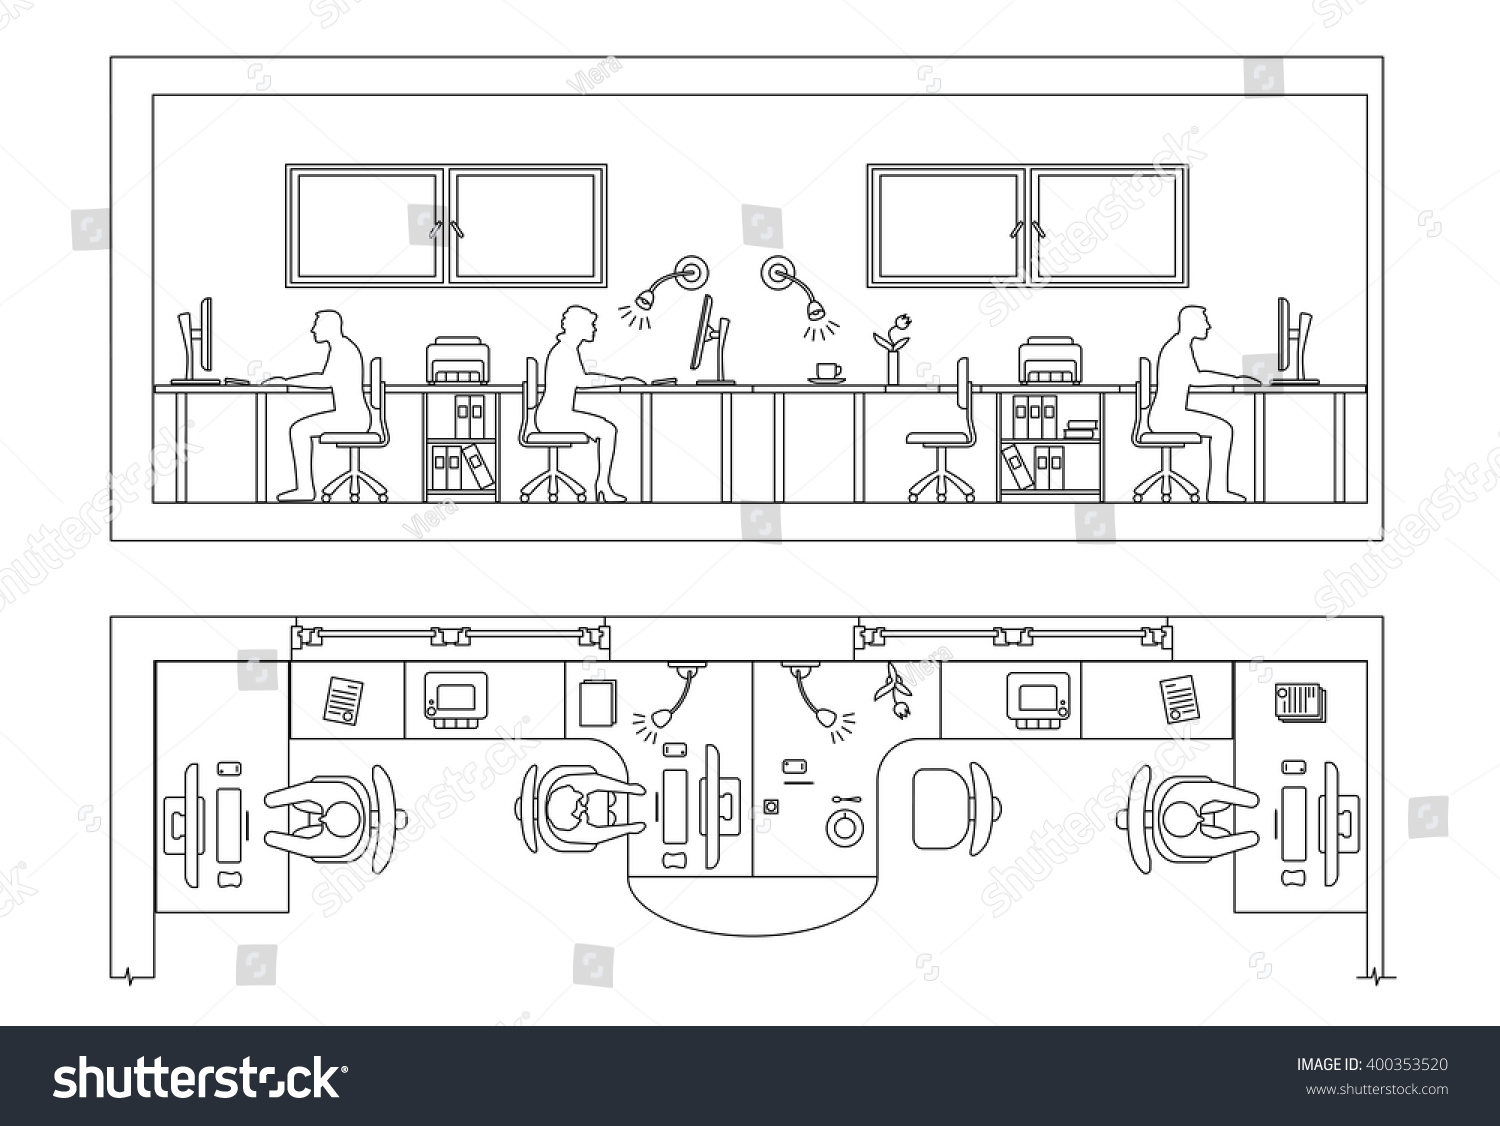 Architectural set of furniture  Design elements for plan  section  frontal  view  Thin. Architectural Set Furniture Design Elements Plan Stock Vector